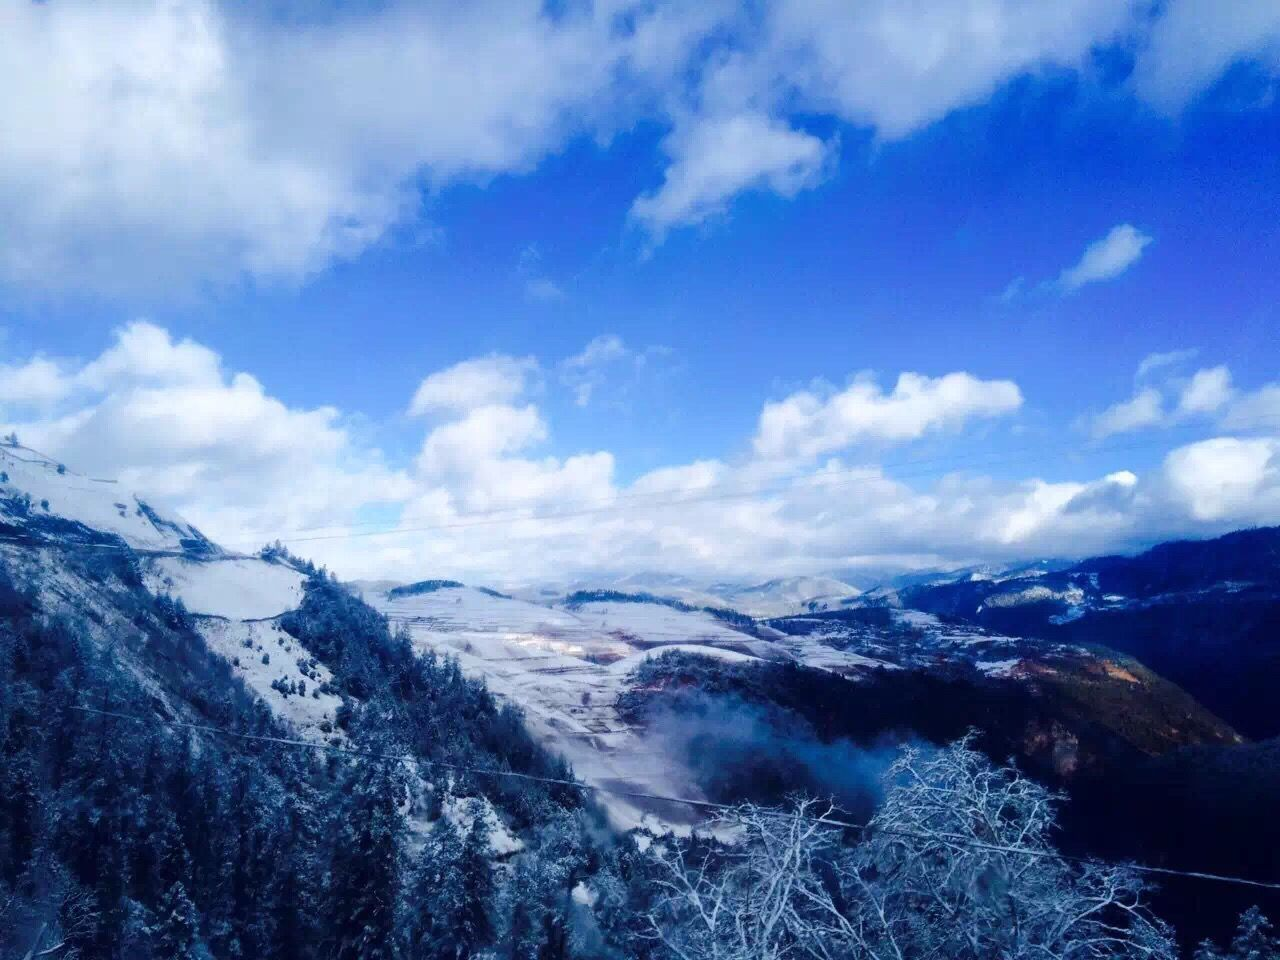 mountain, nature, beauty in nature, scenics, landscape, tranquil scene, sky, cold temperature, cloud - sky, snow, no people, outdoors, tranquility, day, wilderness area